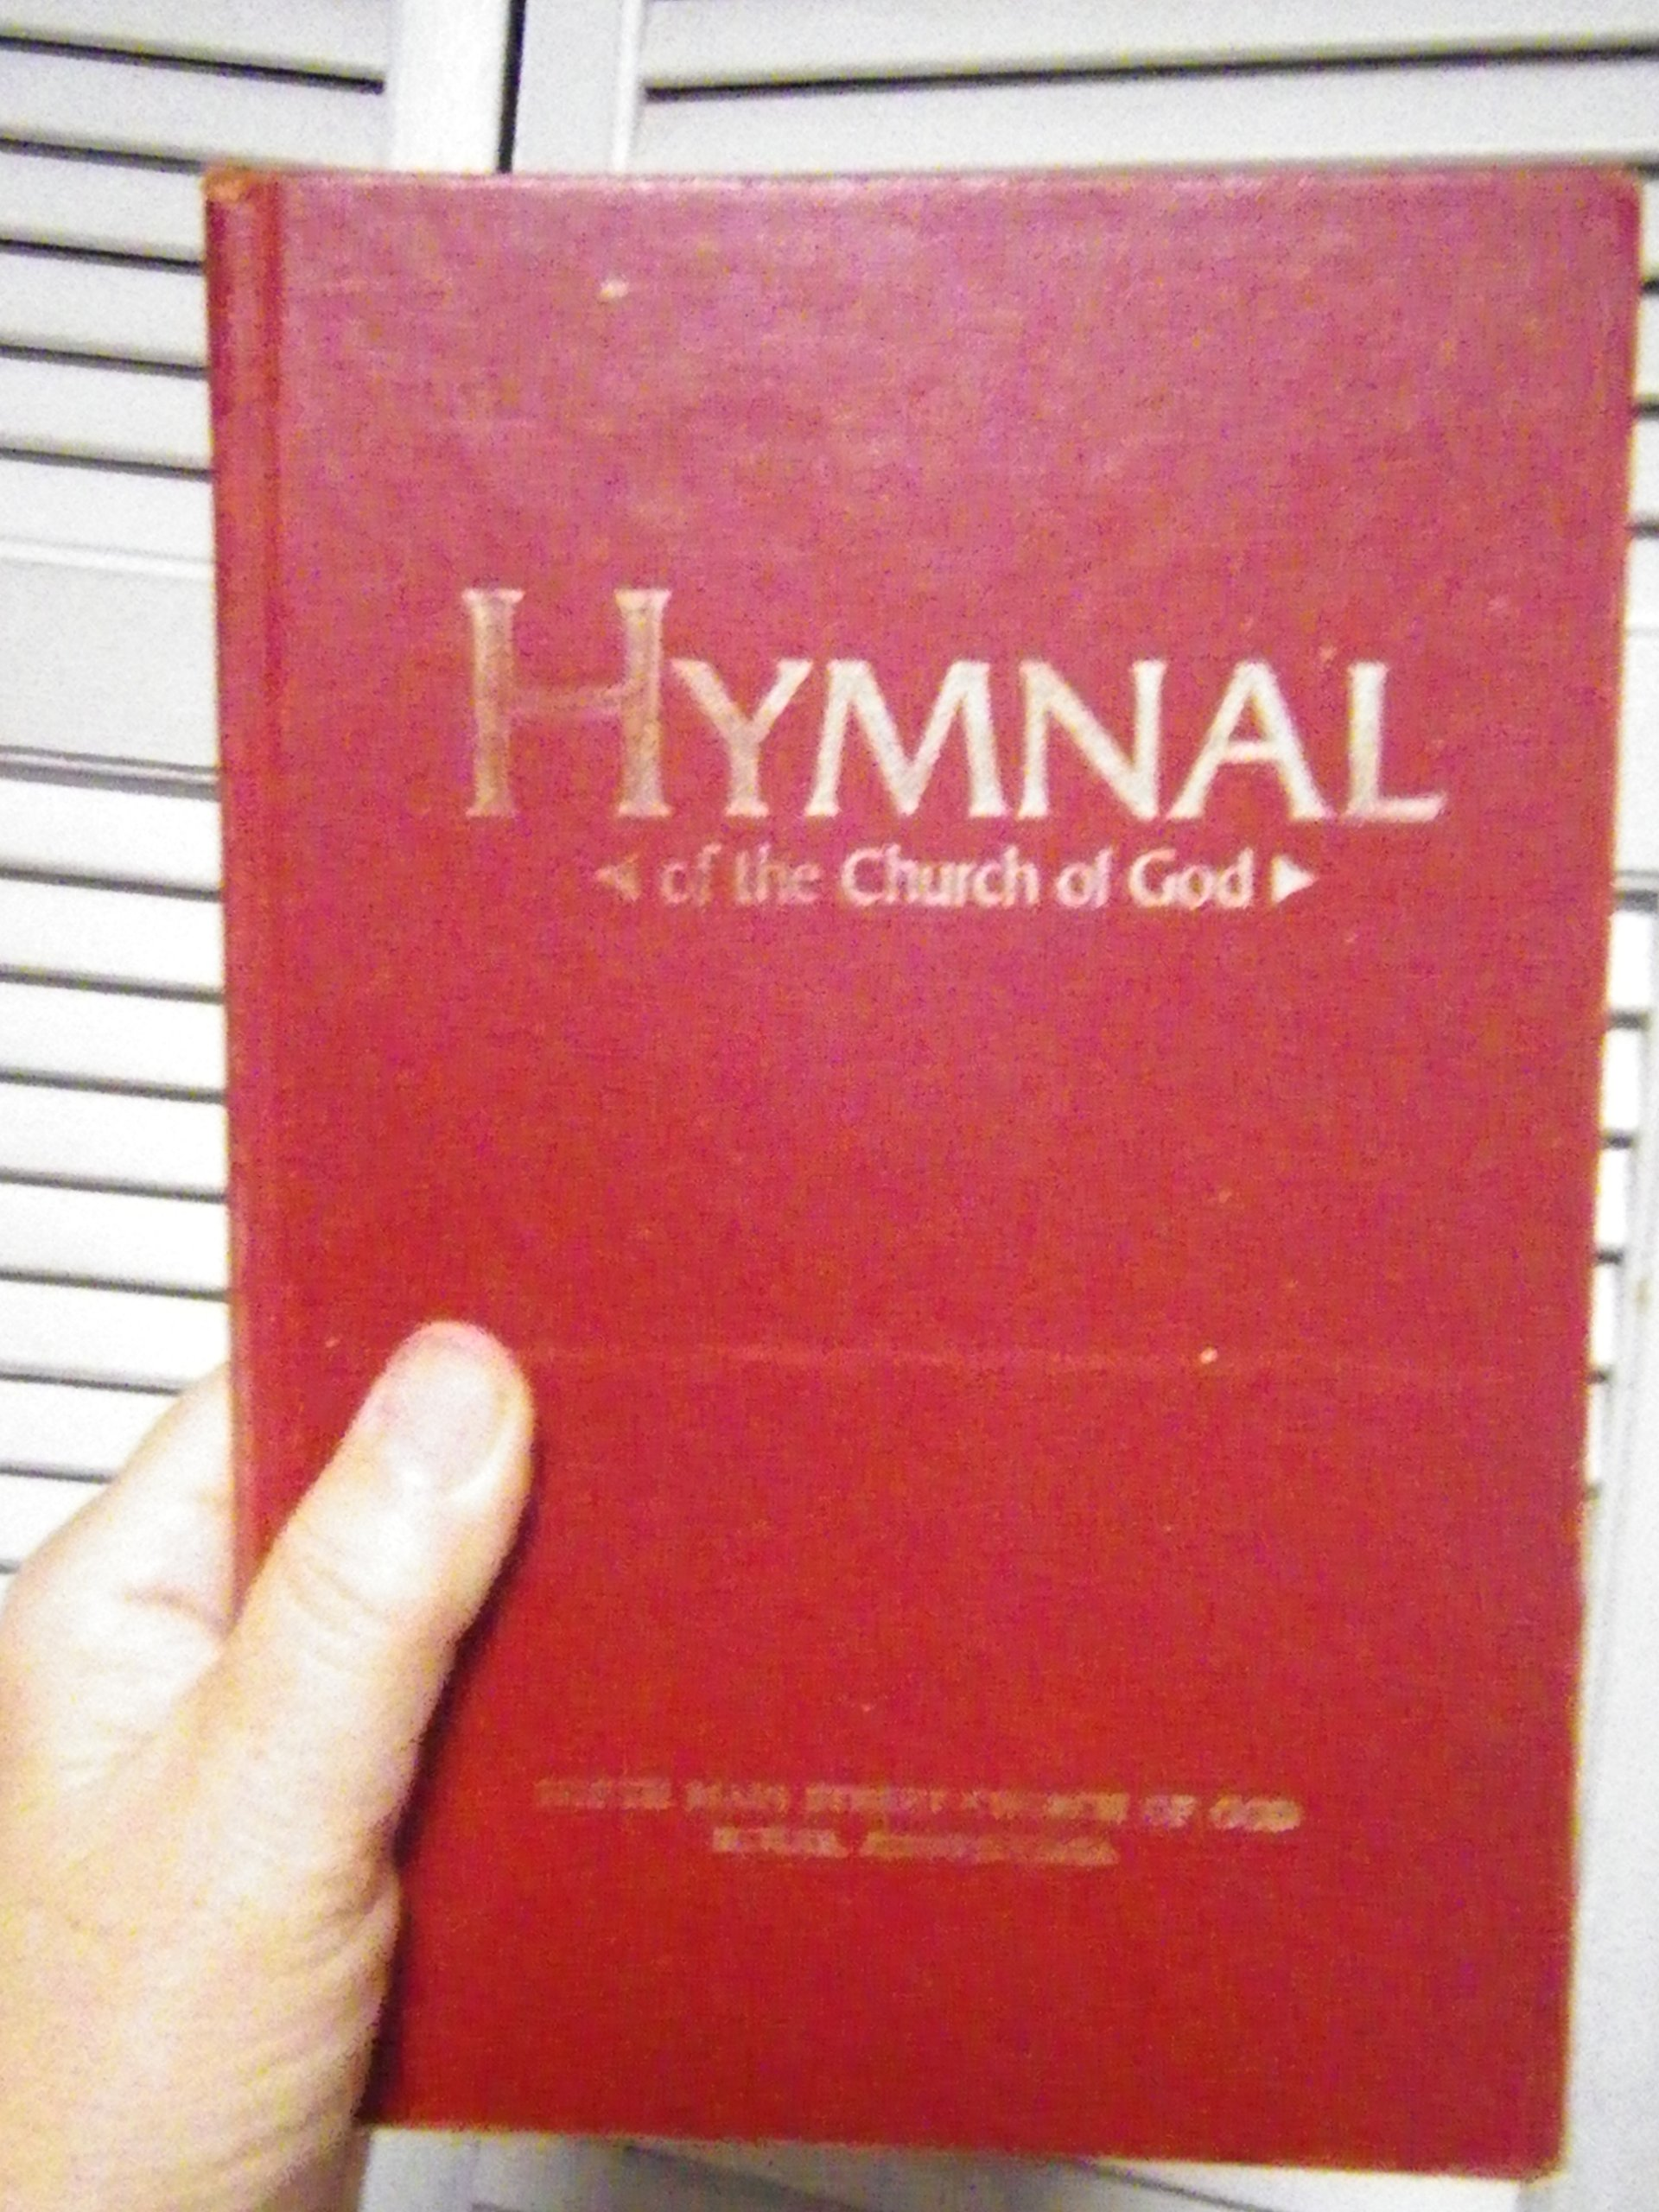 Hymnal of the Church of God